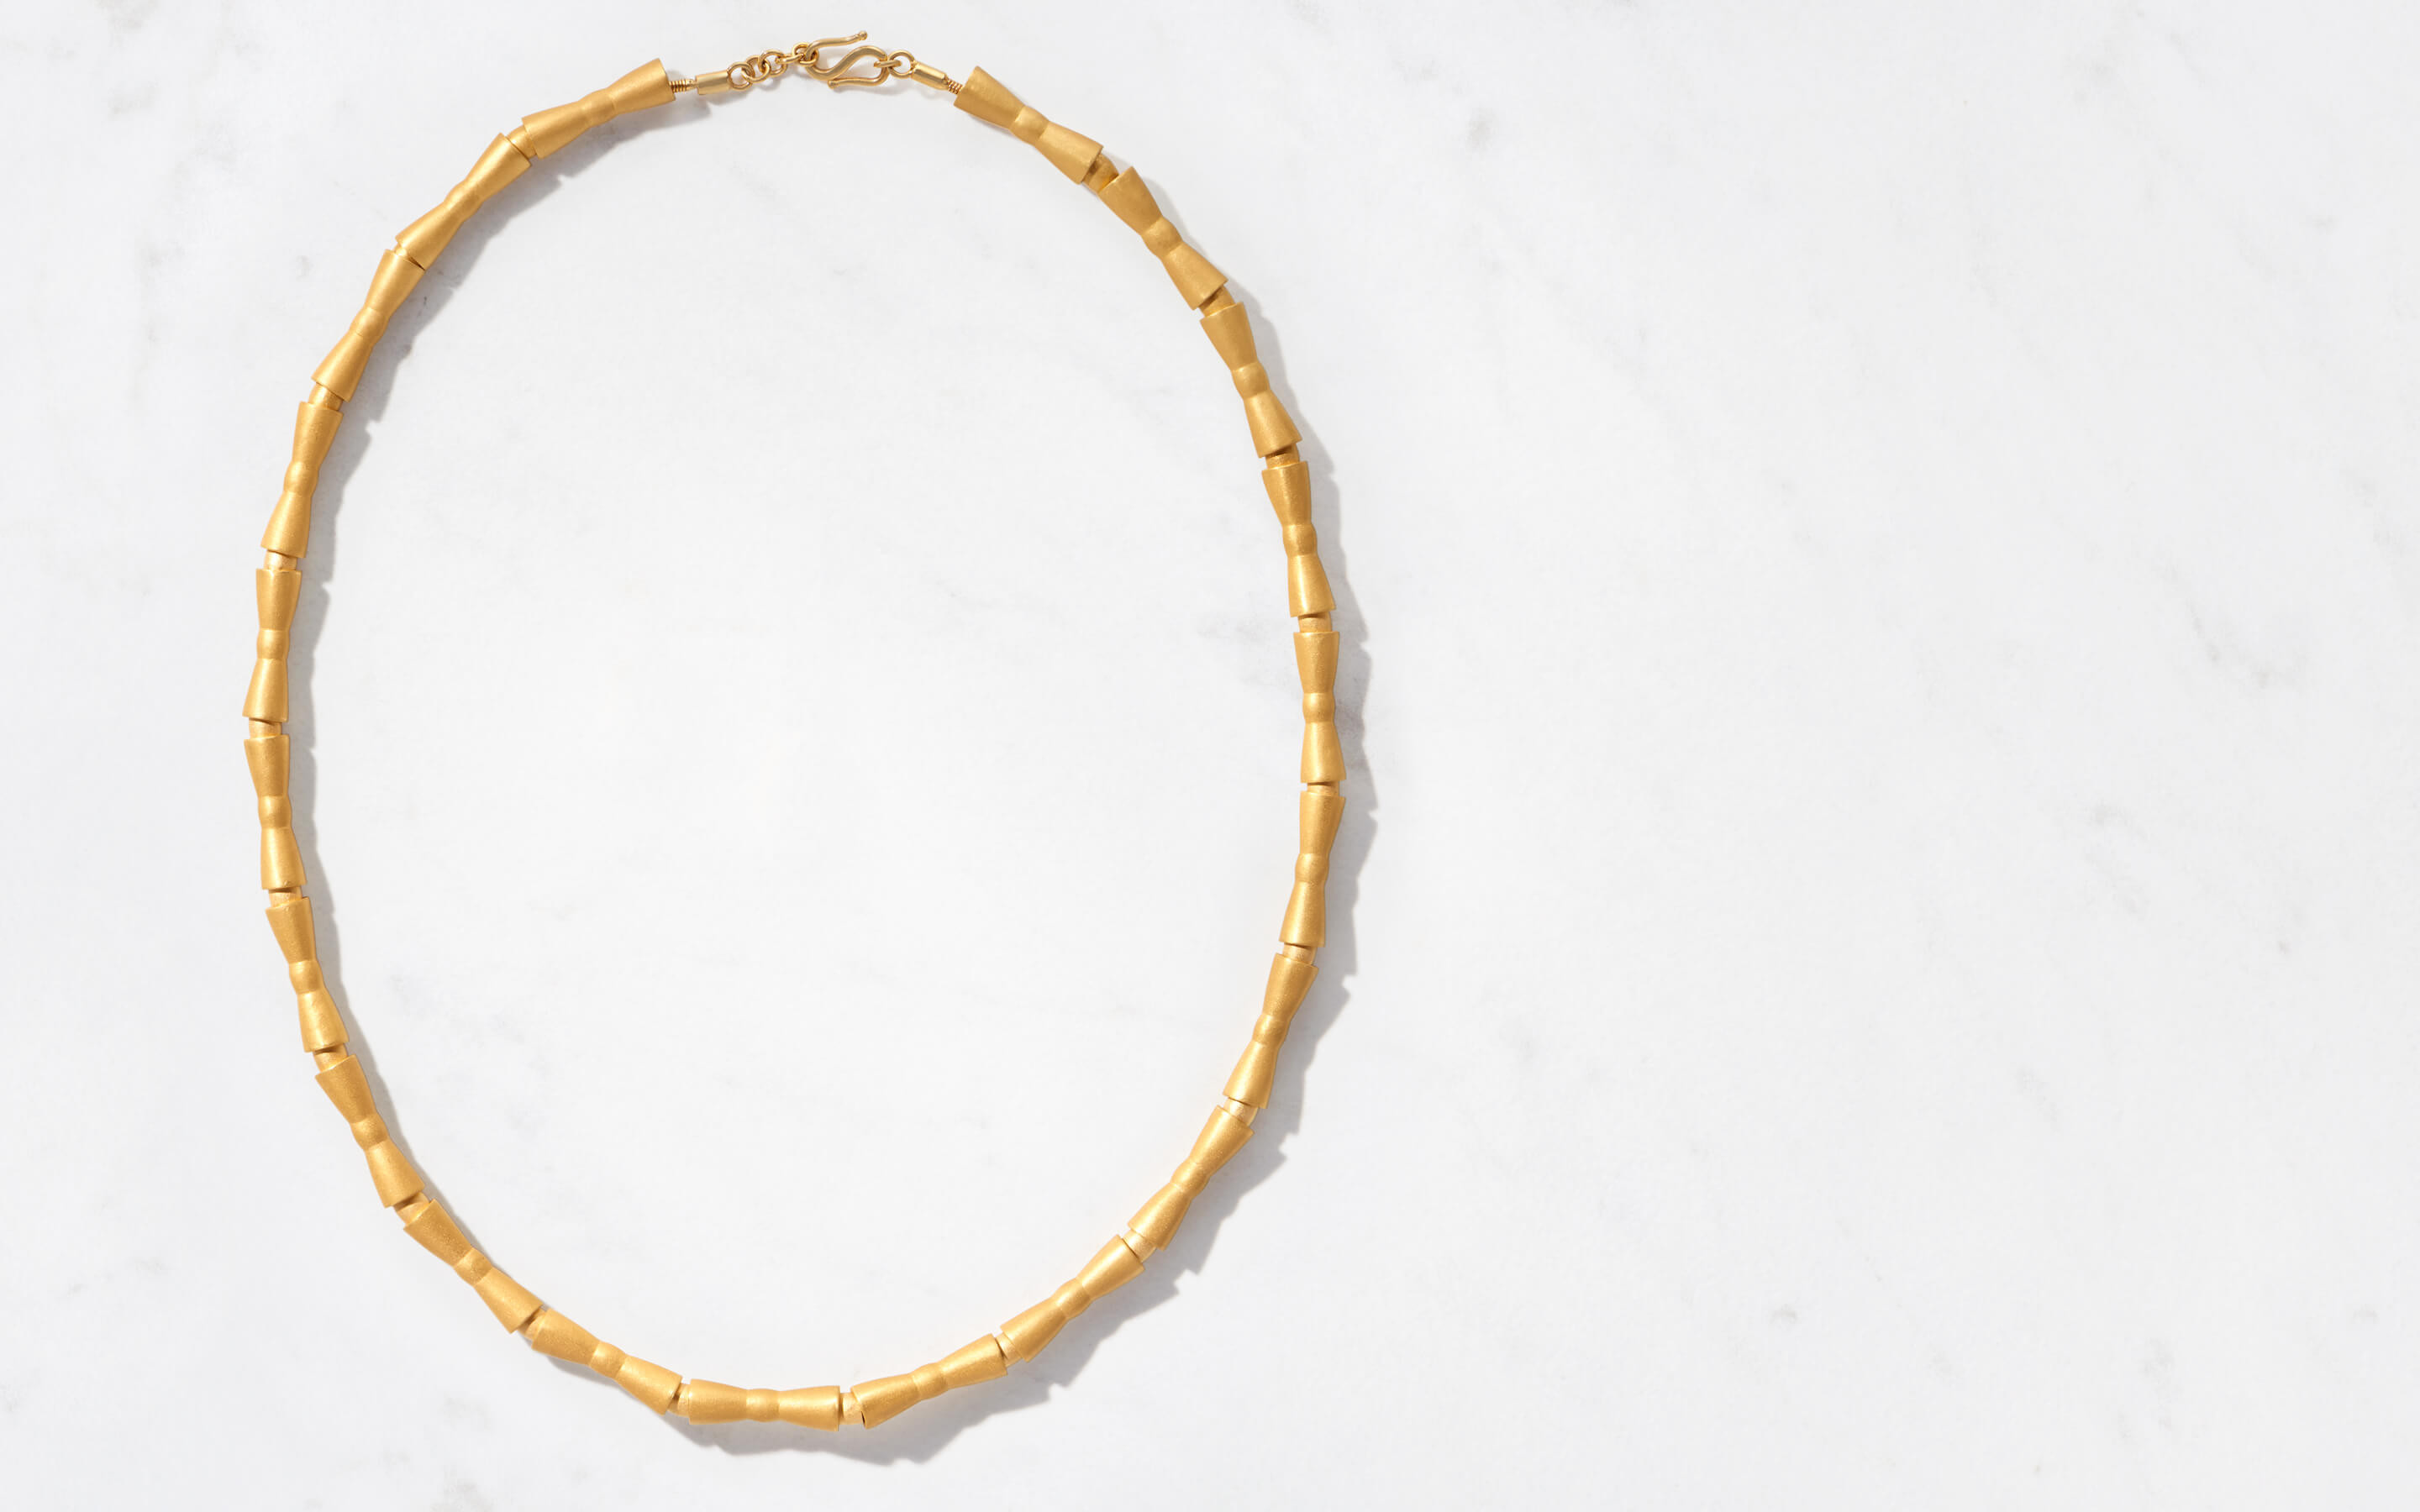 22 karat gold choker necklace with bowties rendered in modern beads